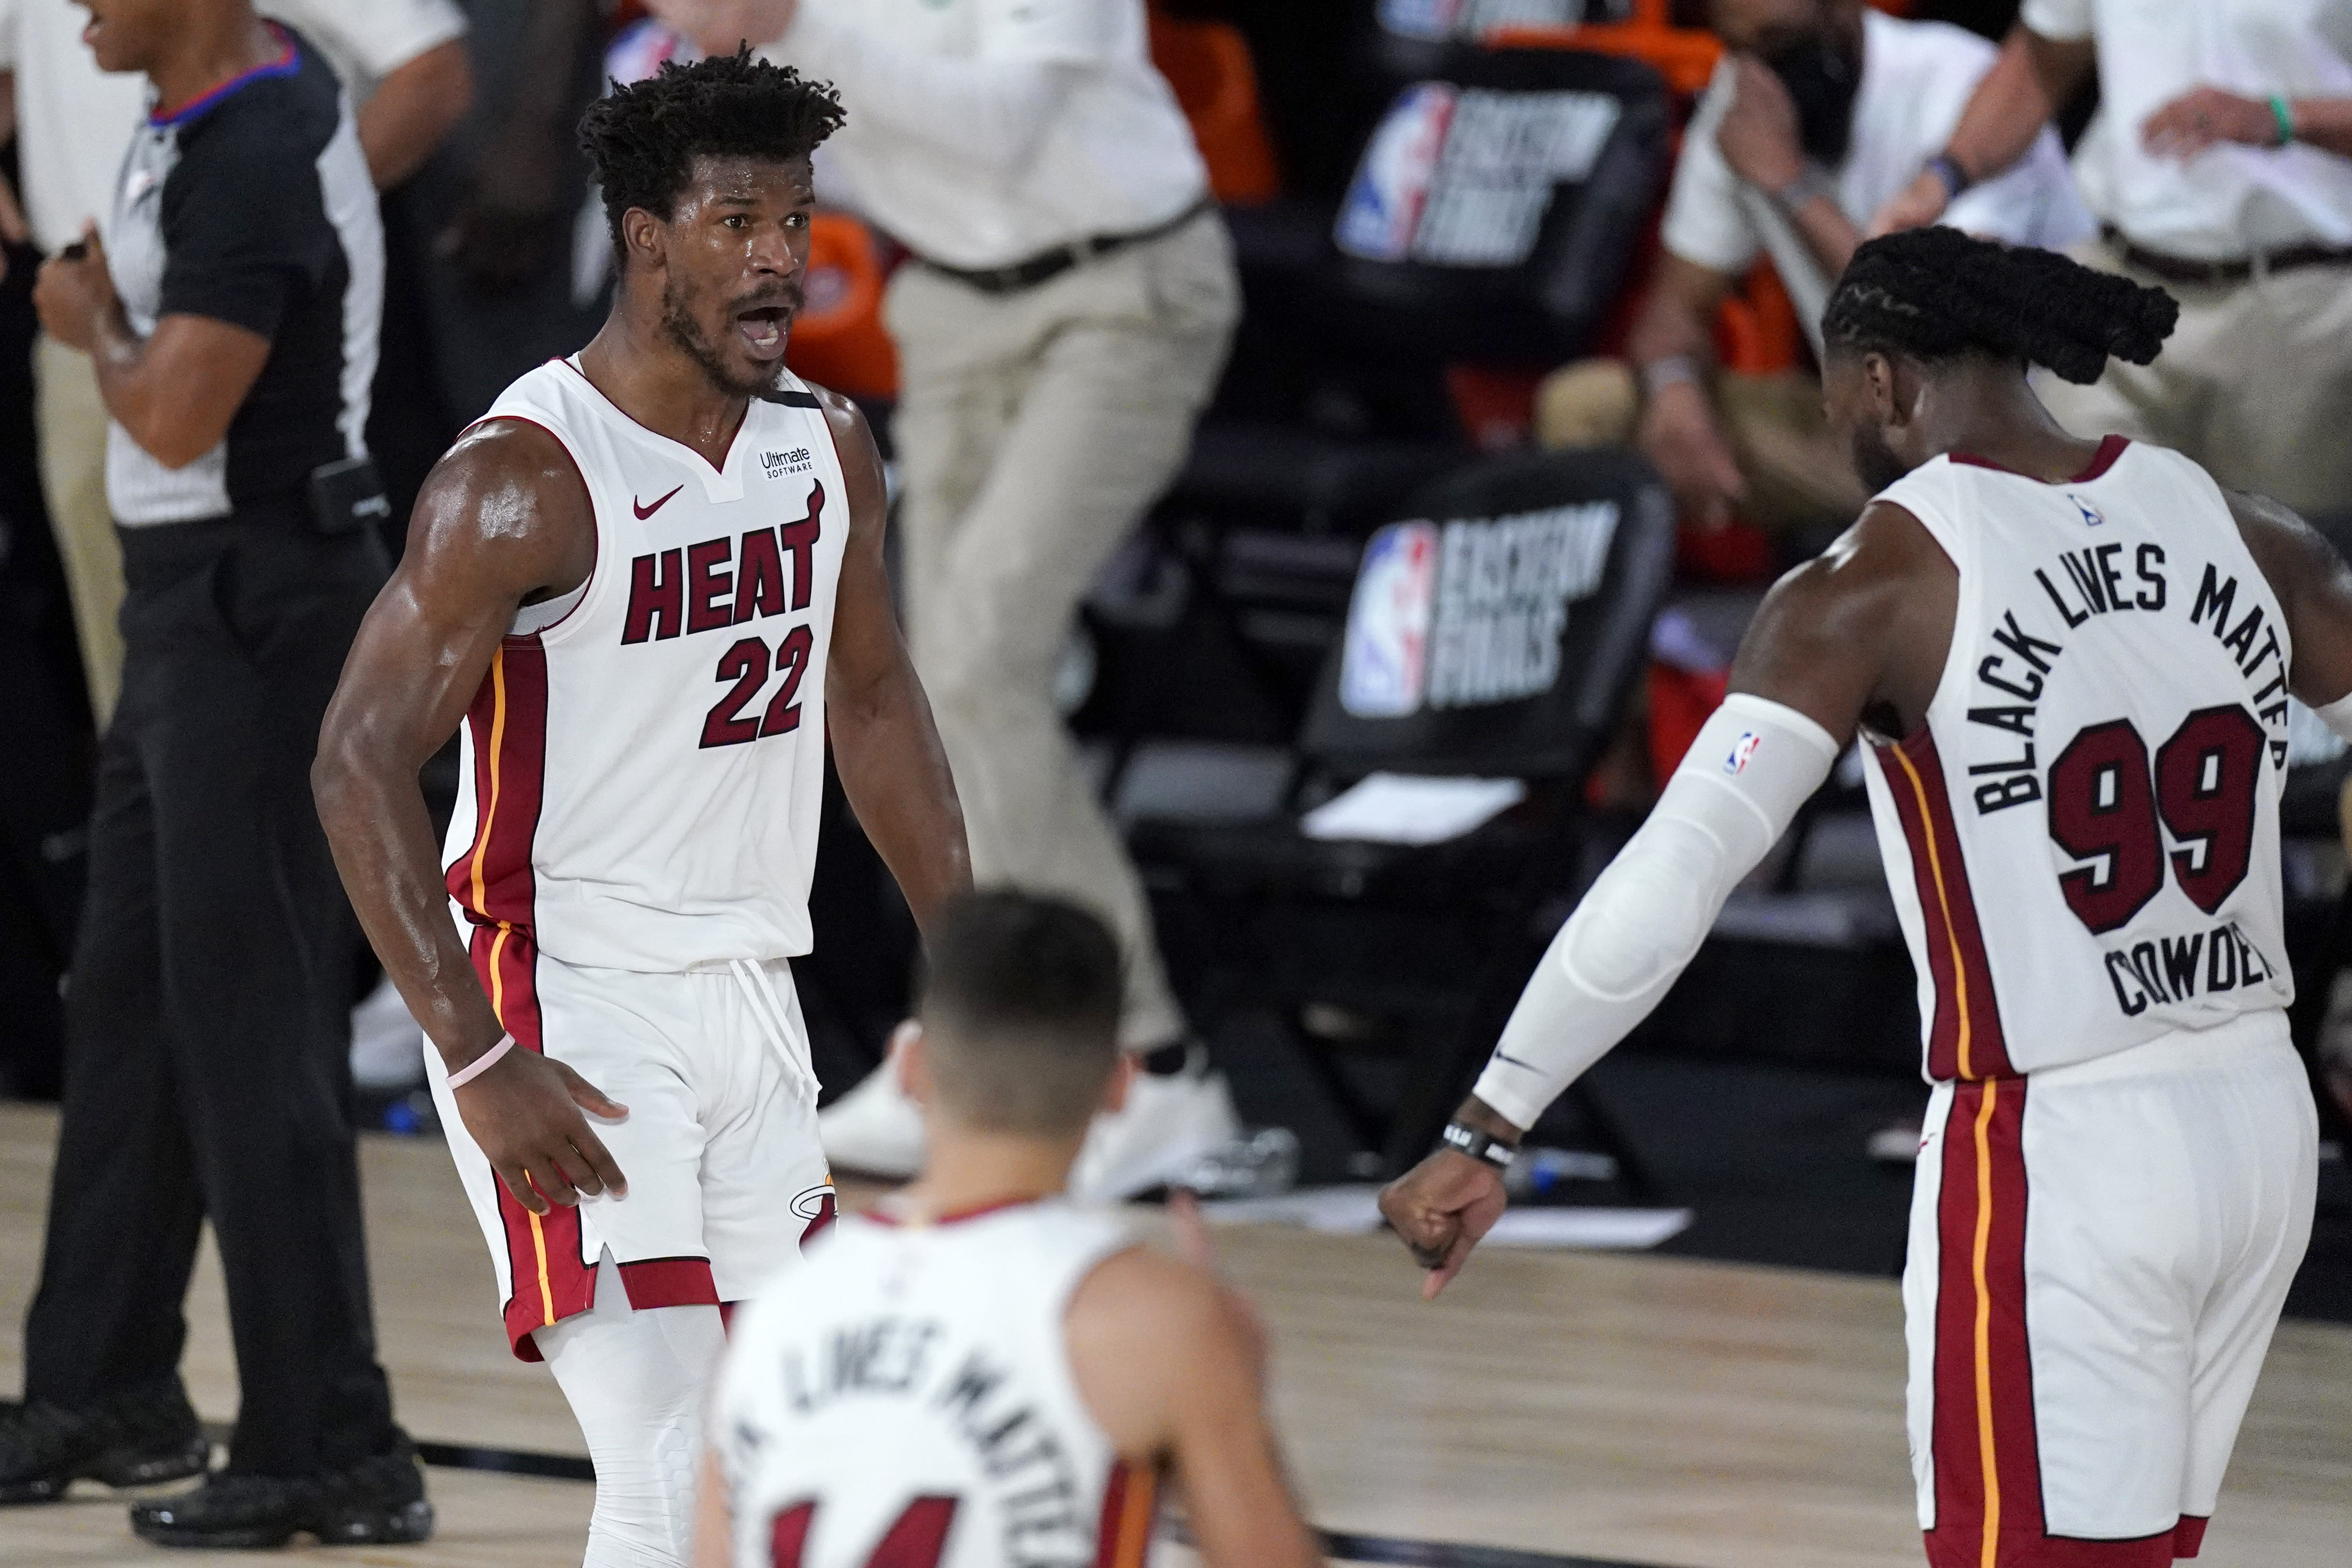 Miami Heat's Jimmy Butler (22), Tyler Herro, bottom center, and Jae Crowder (99) celebrate a game tying basket by Butler late in the second half of an NBA conference final playoff basketball game against the Boston Celtics on Tuesday, Sept. 15, 2020, in Lake Buena Vista, Fla. (AP Photo/Mark J. Terrill)